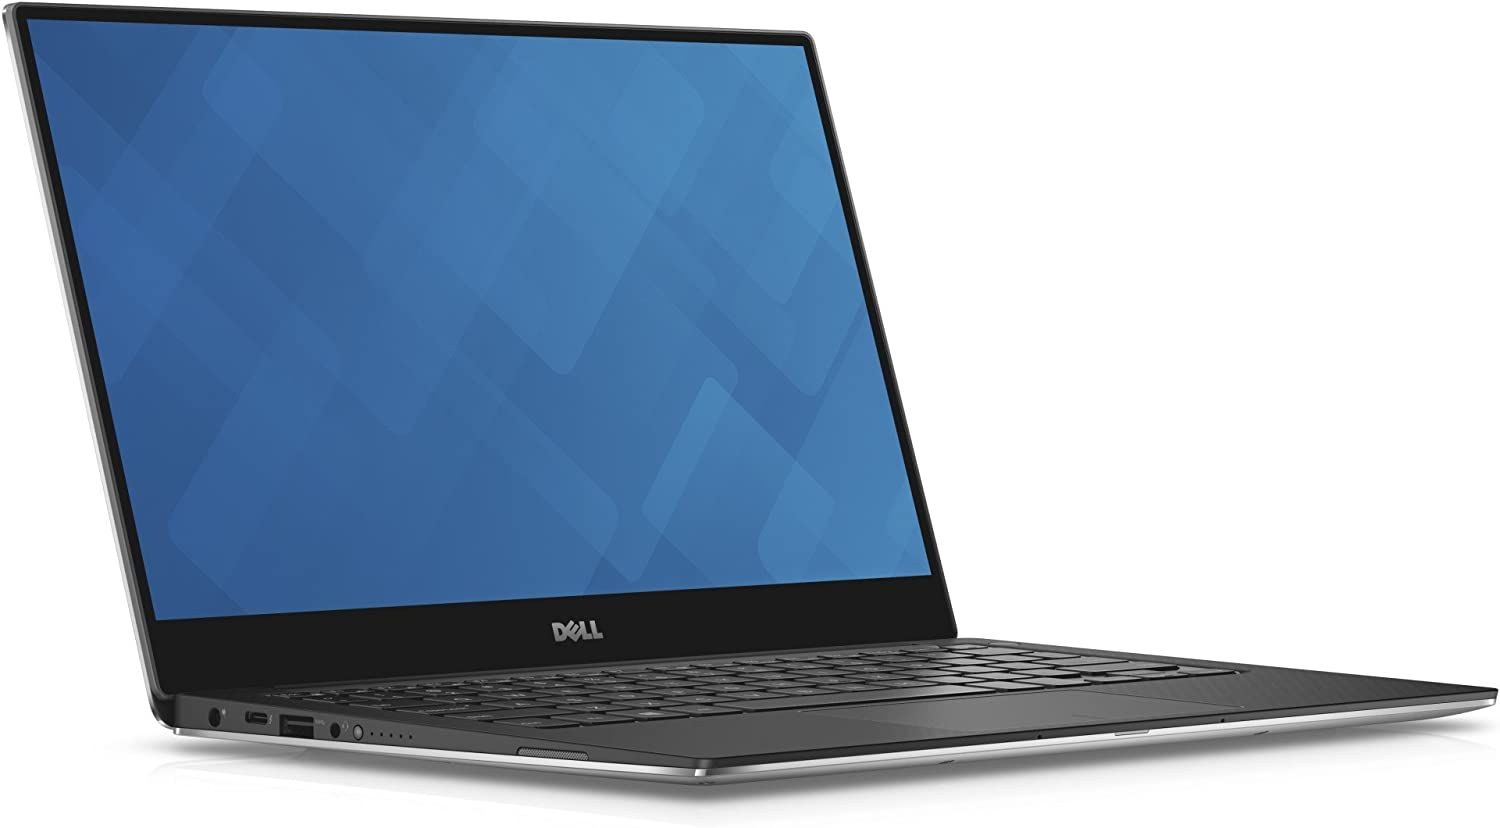 "Dell XPS 13 9360 13.3"" Laptop QHD+ Touchscreen 7th Gen Intel Core i7-7500U, 16GB RAM, 512GB NVME SSD Machined Aluminum Display Silver Win 10 (Renewed)"